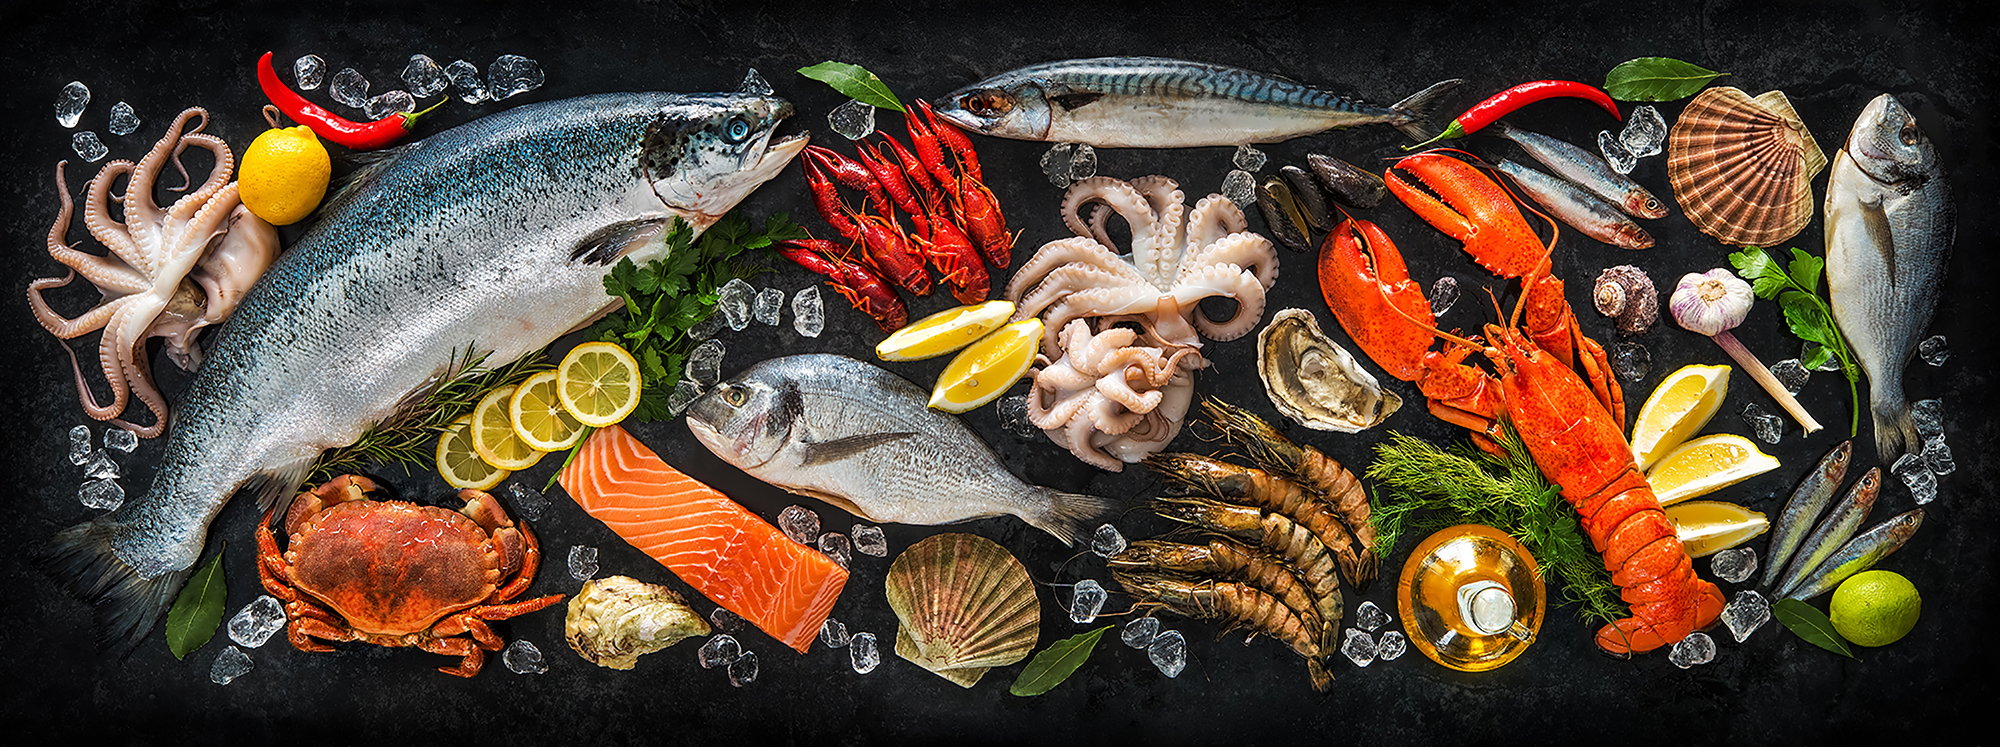 1.	Responsibly sourcing sustainable seafood